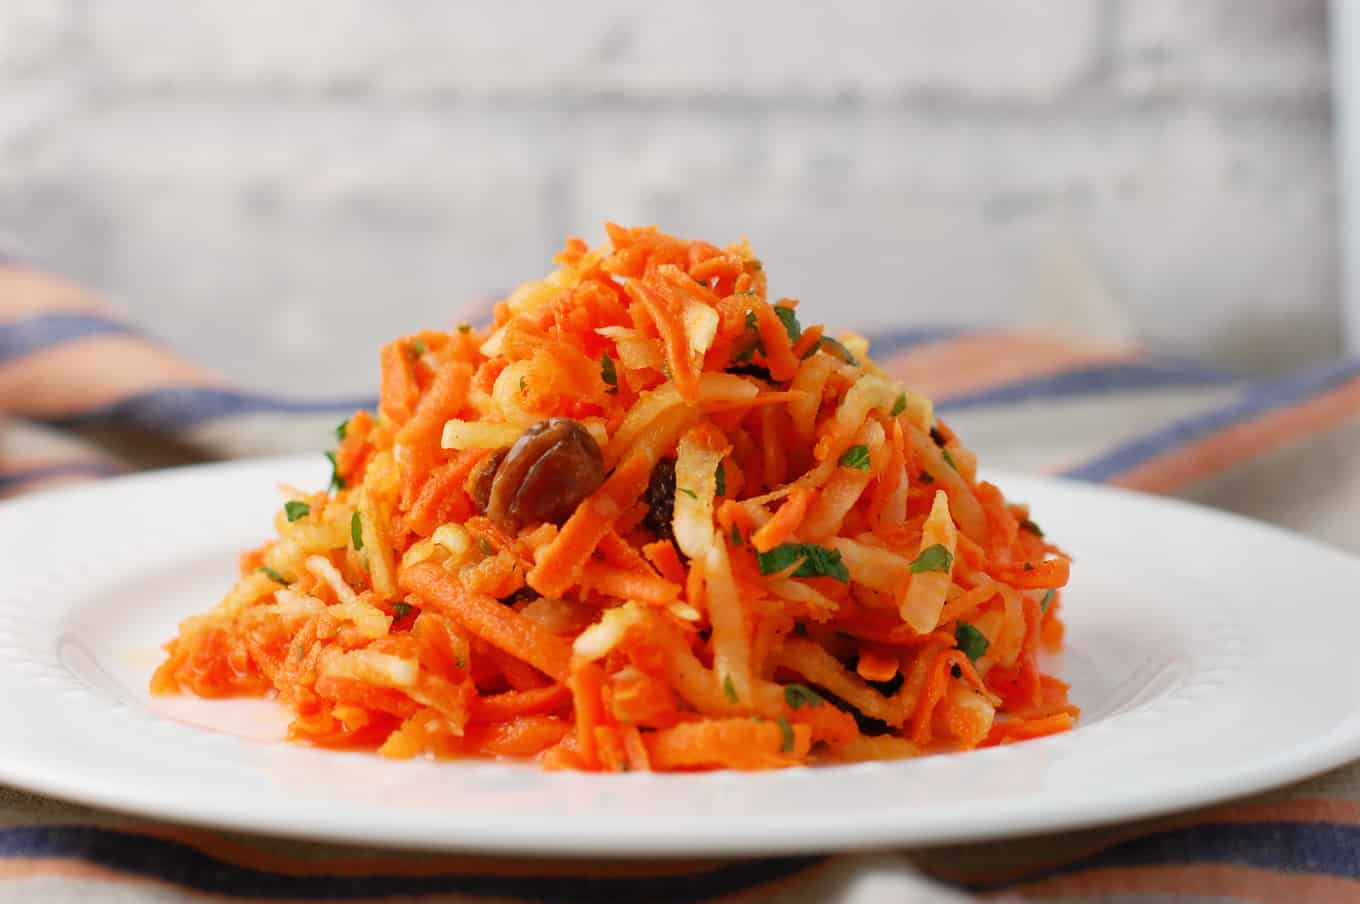 daikon carrot salad with raisins